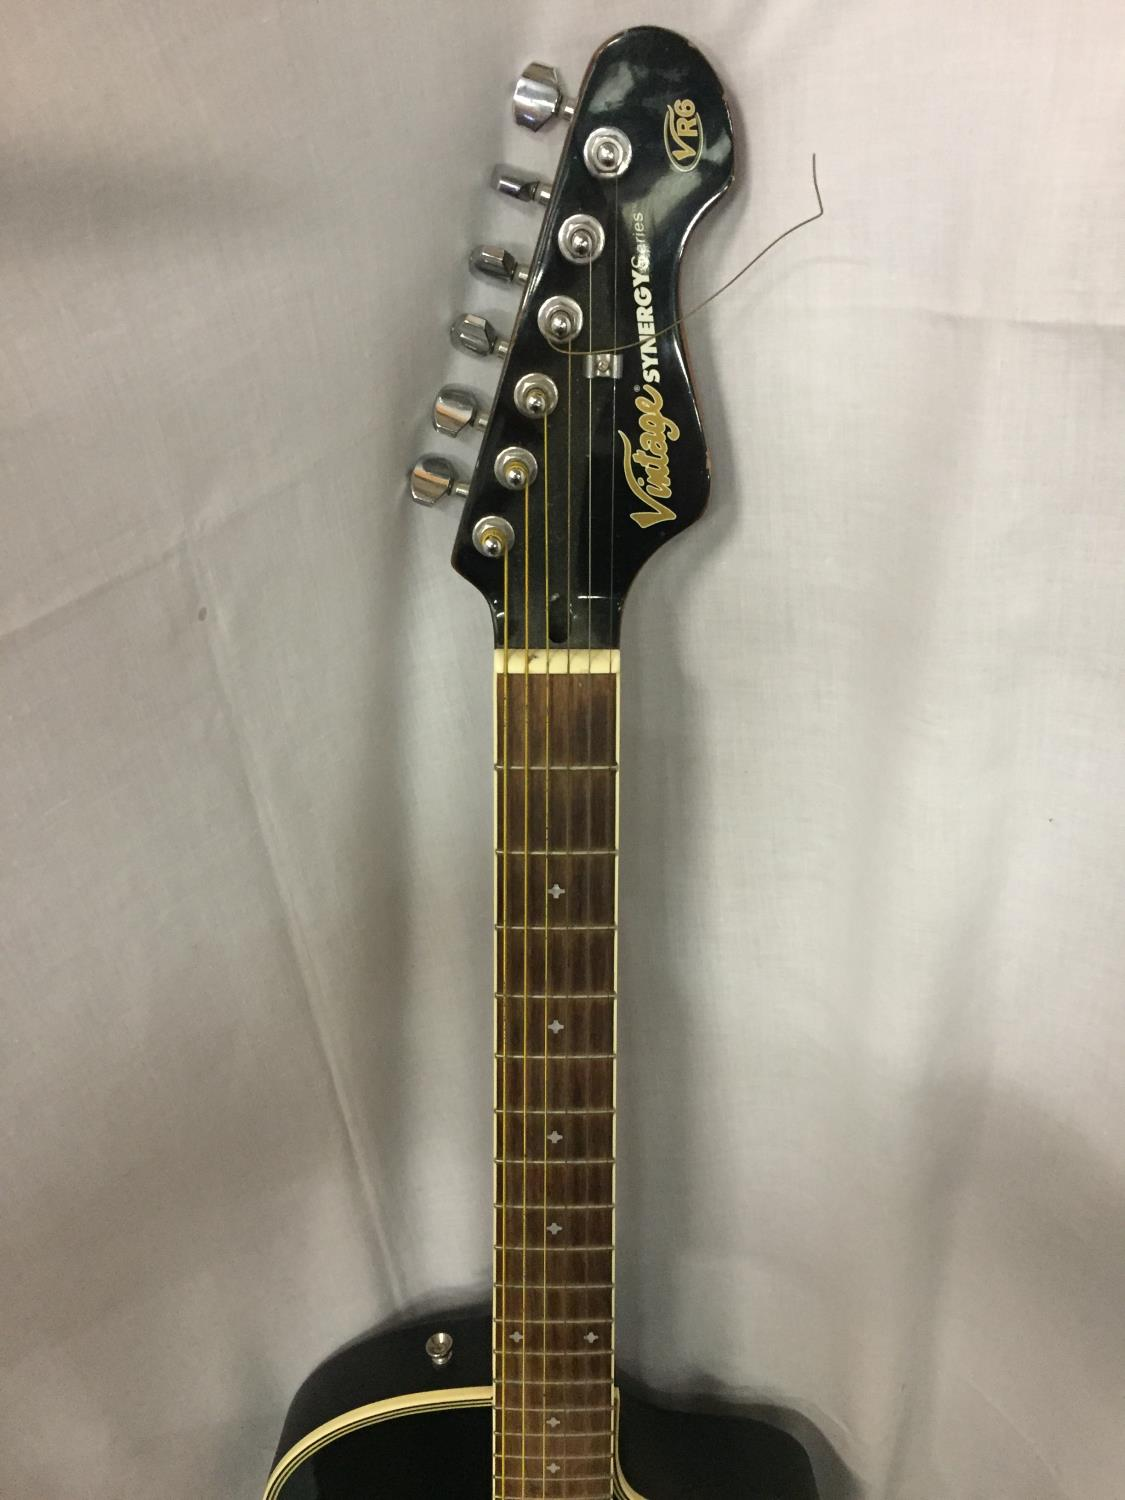 A BLACK VINTAGE SYNERGY SERIES GUITAR - Image 5 of 10